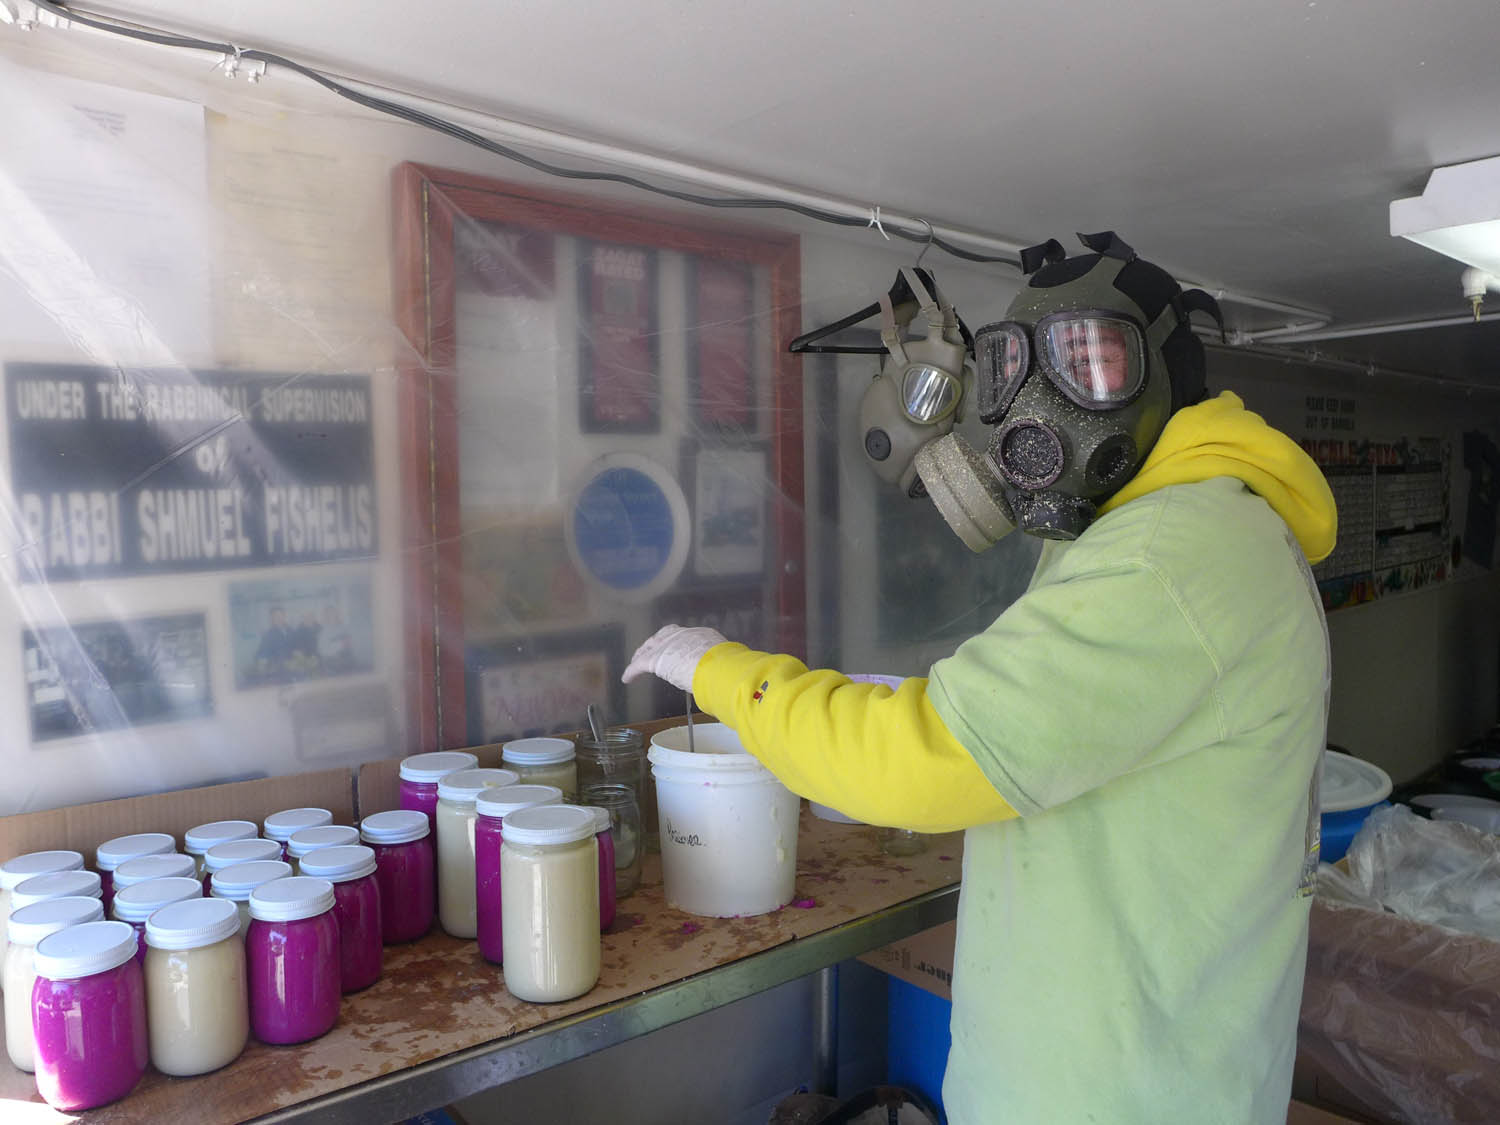 Then to the Pickle Guys, where this guy was making horseradish paste